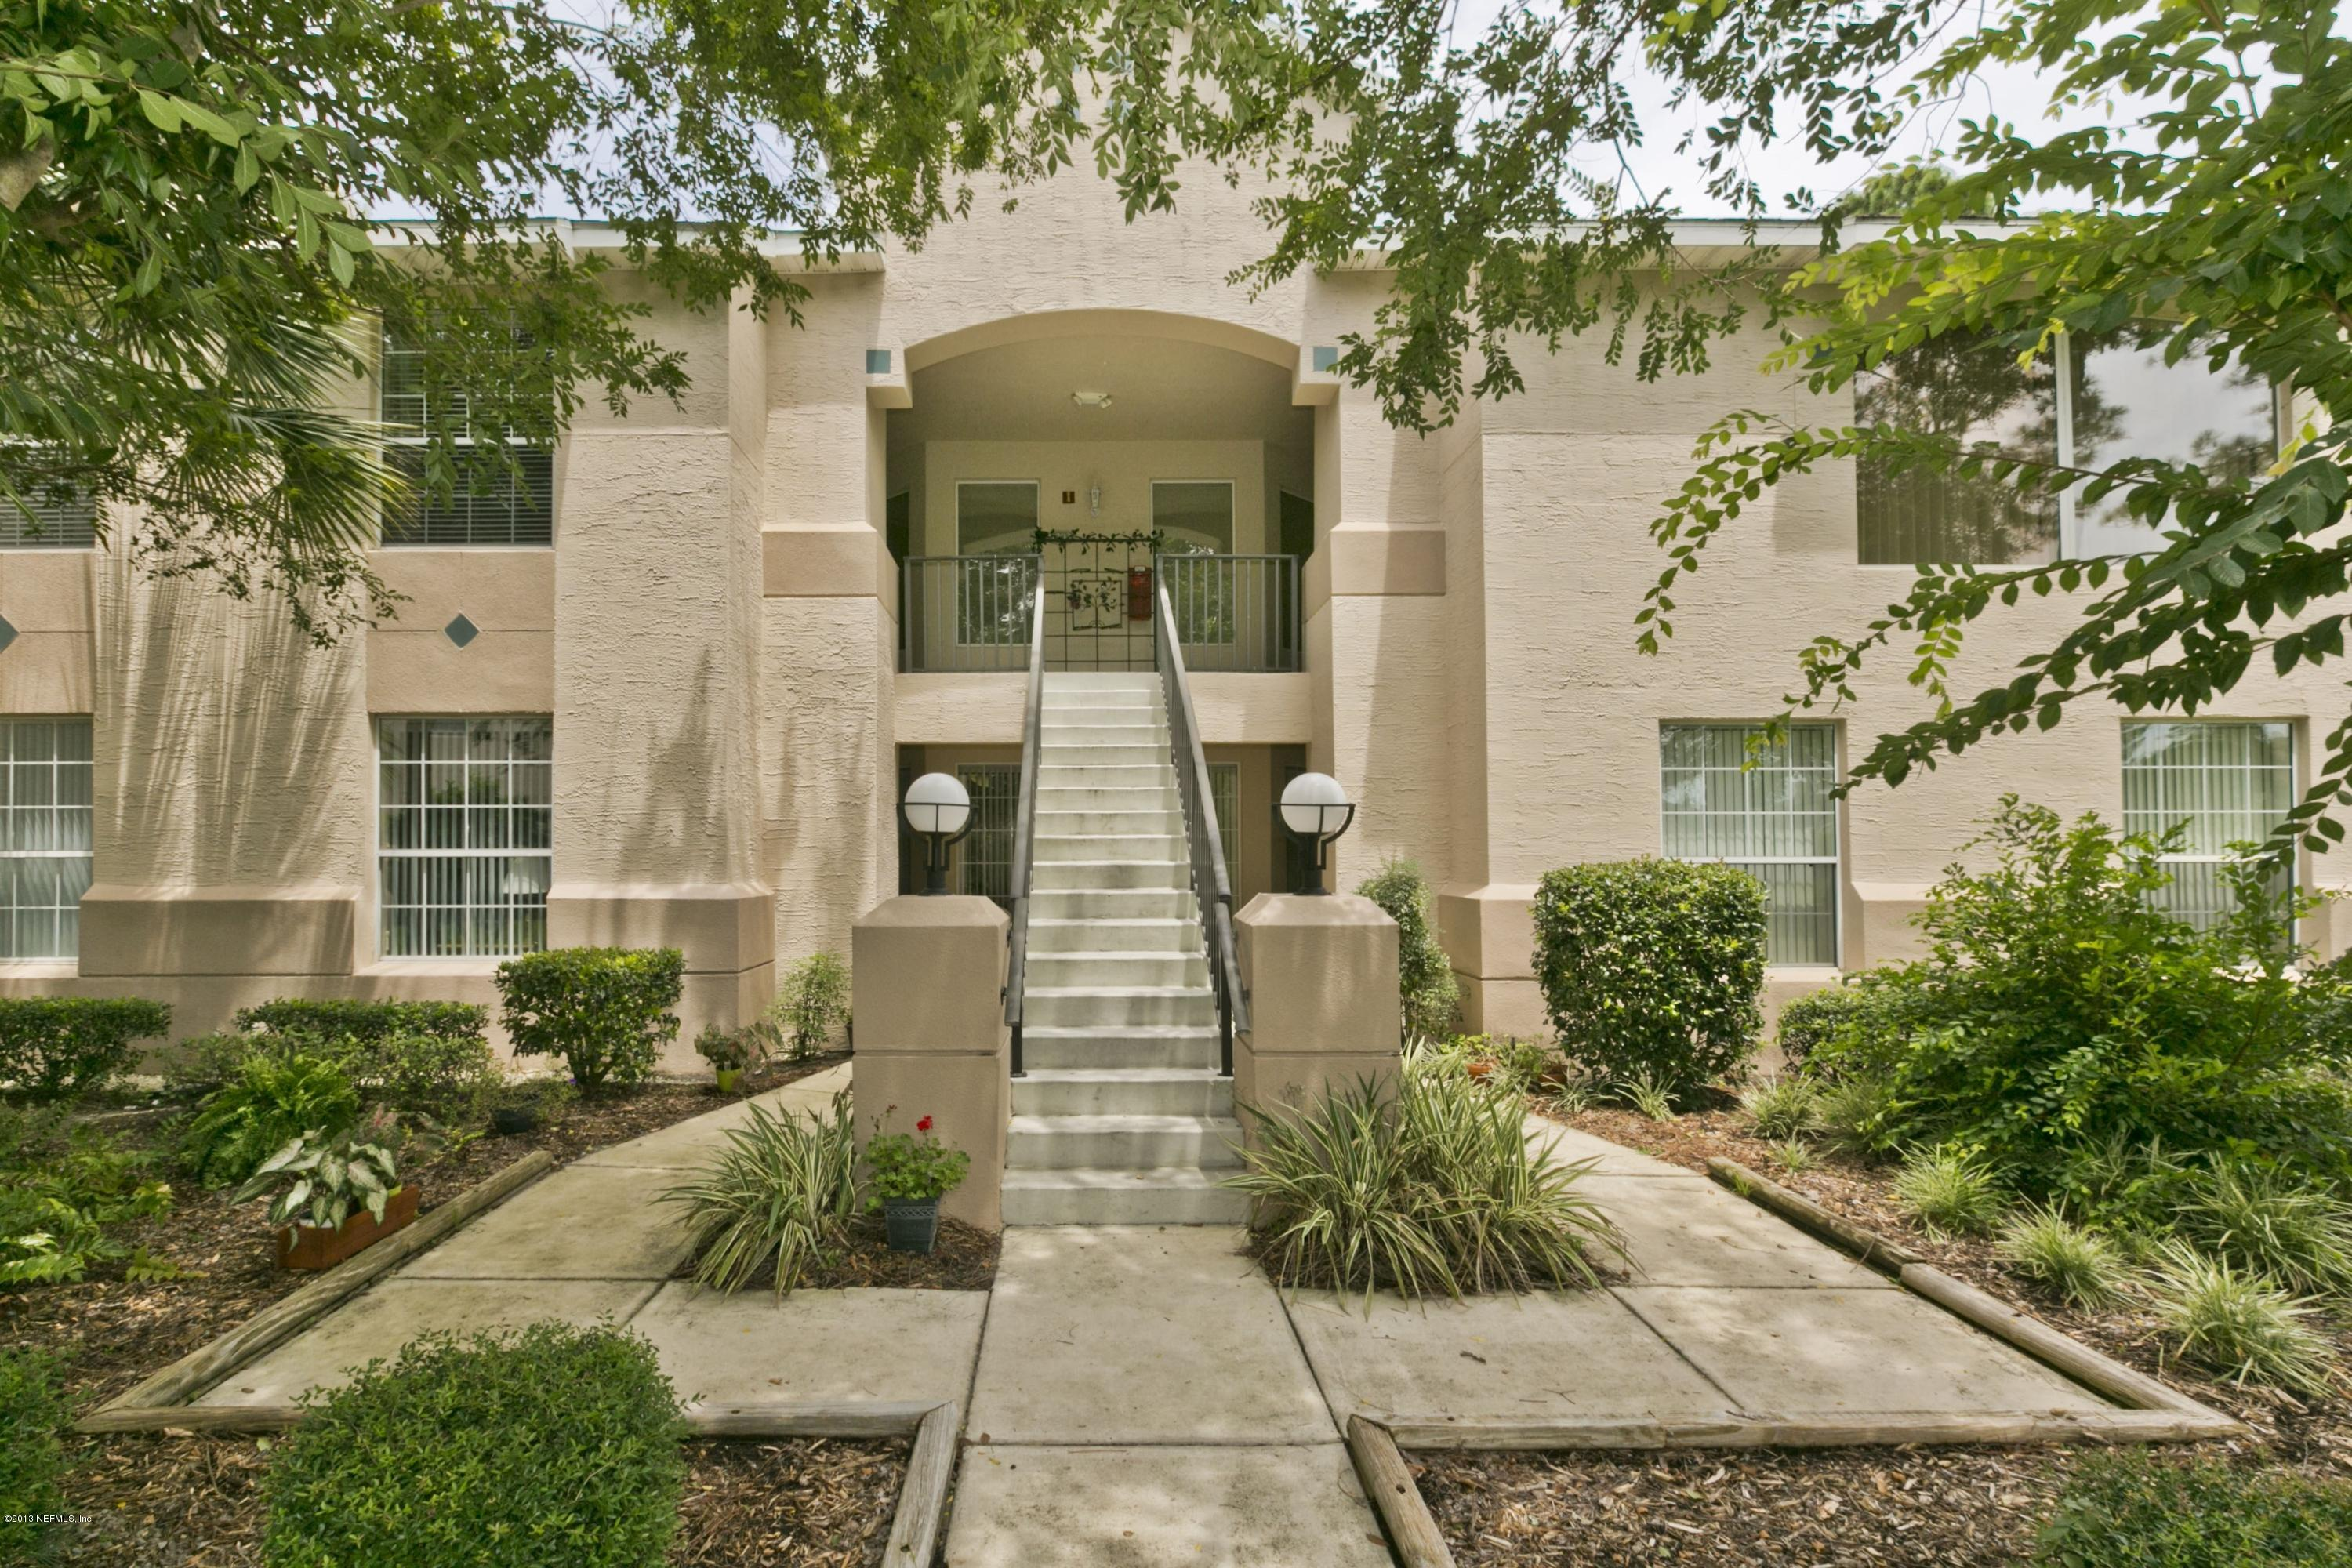 1201 ROYAL TROON, ST AUGUSTINE, FLORIDA 32086, 3 Bedrooms Bedrooms, ,2 BathroomsBathrooms,Residential - condos/townhomes,For sale,ROYAL TROON,963205